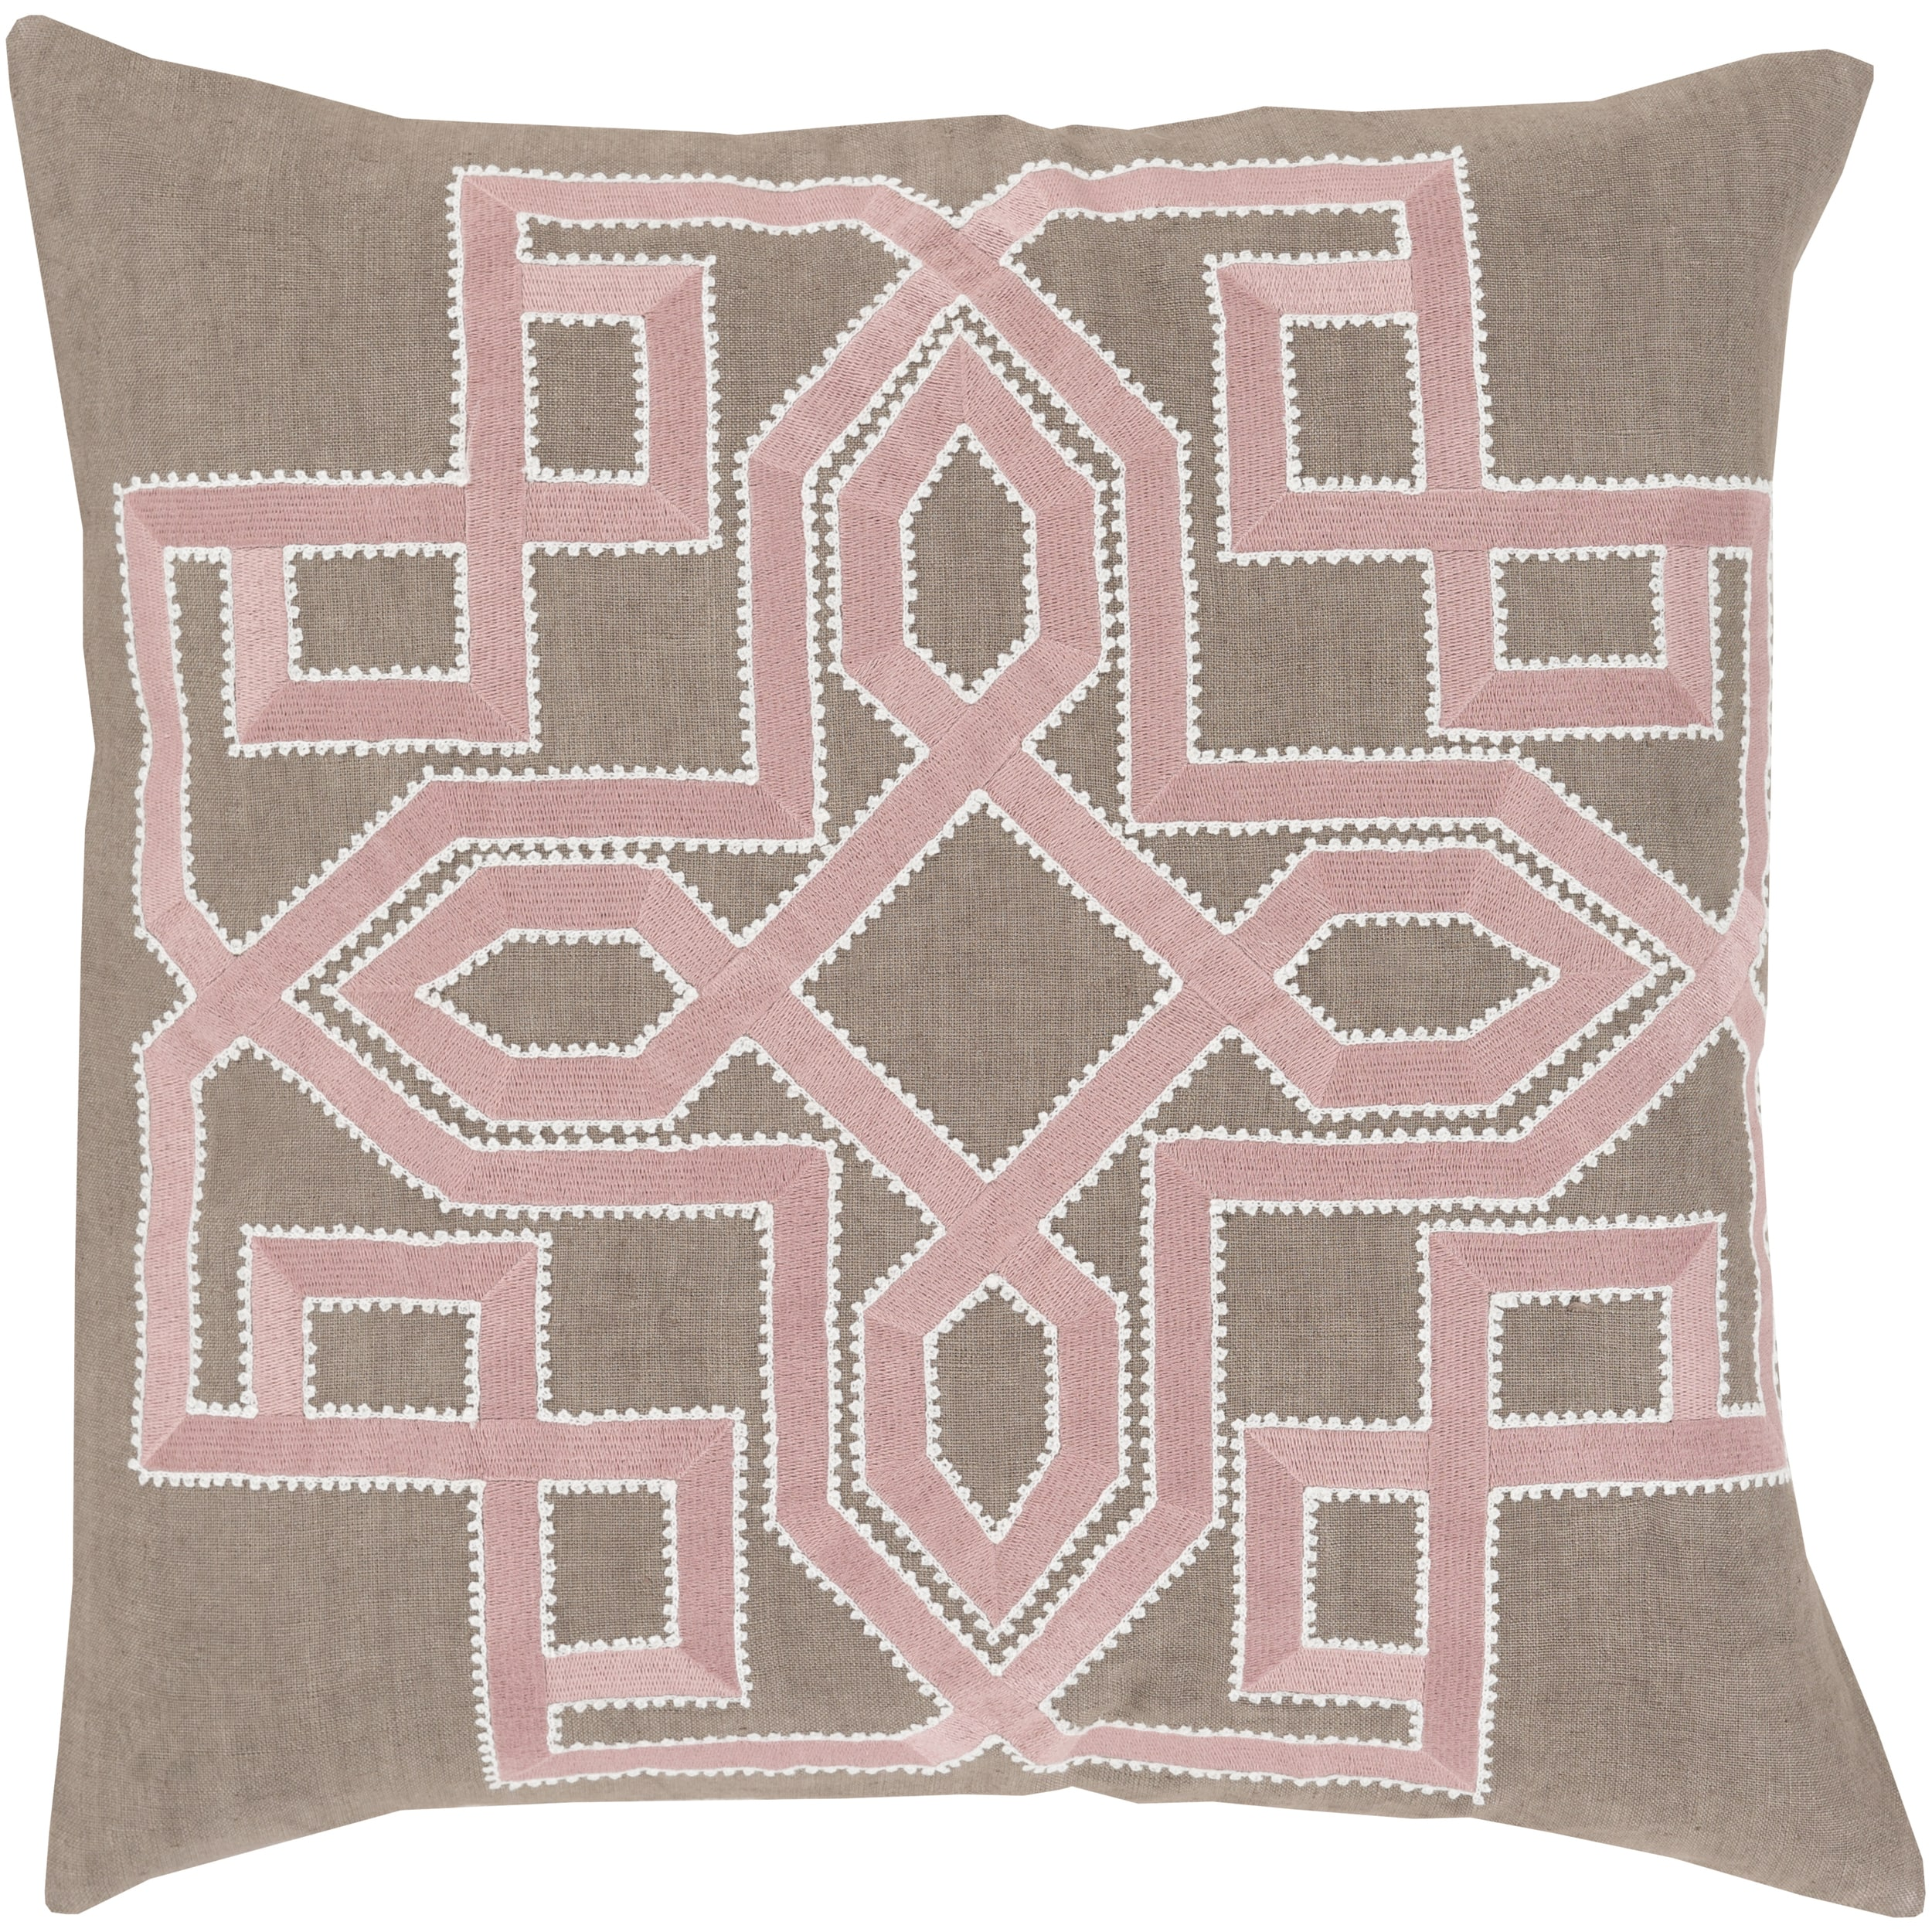 Decorative 20-inch Poly or Feather Down Filled Garcia Geometric Throw Pillow (Polyester)